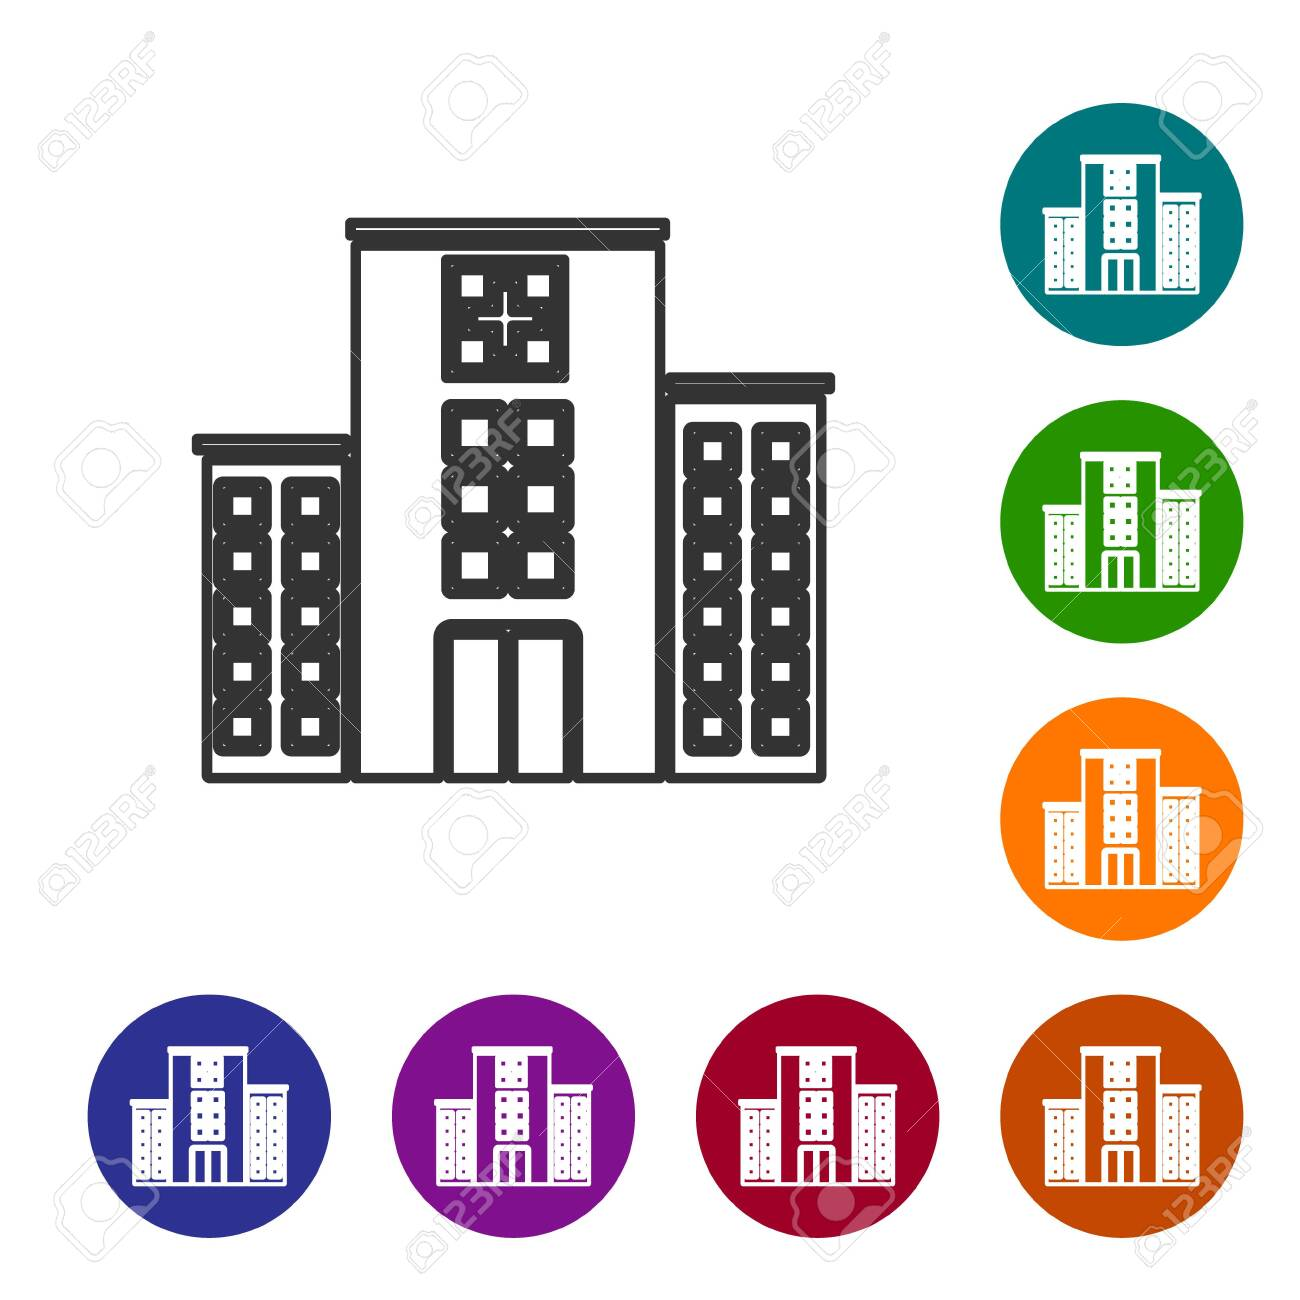 Hospital Building Icon Royalty Free Cliparts, Vectors, And Stock  Illustration. Image 45757981.